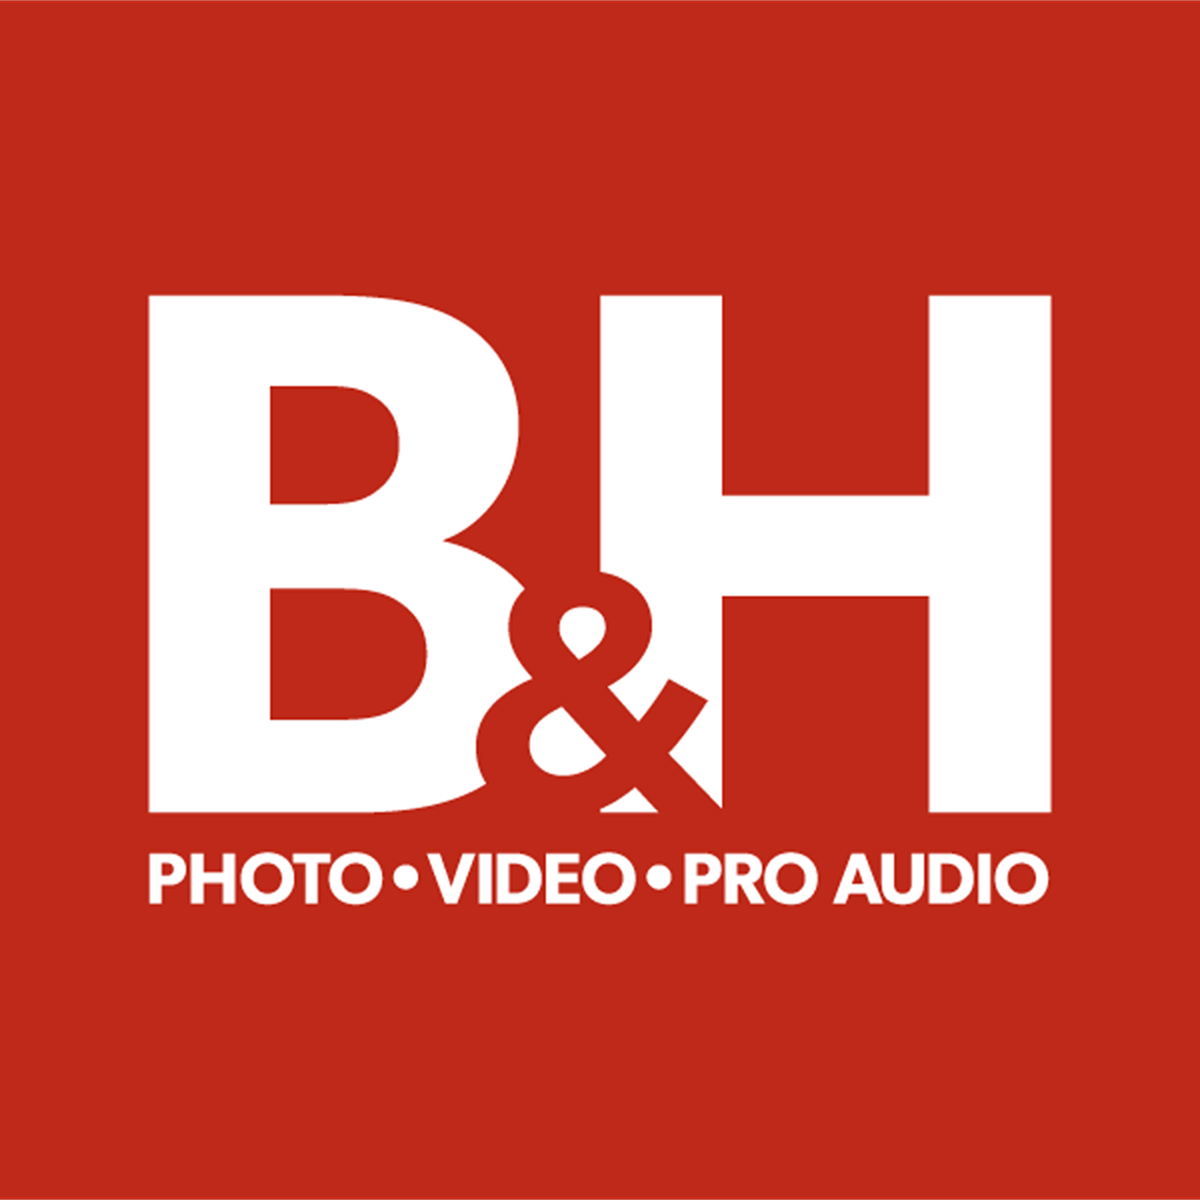 B&H Photo releases detailed statement disputing allegations